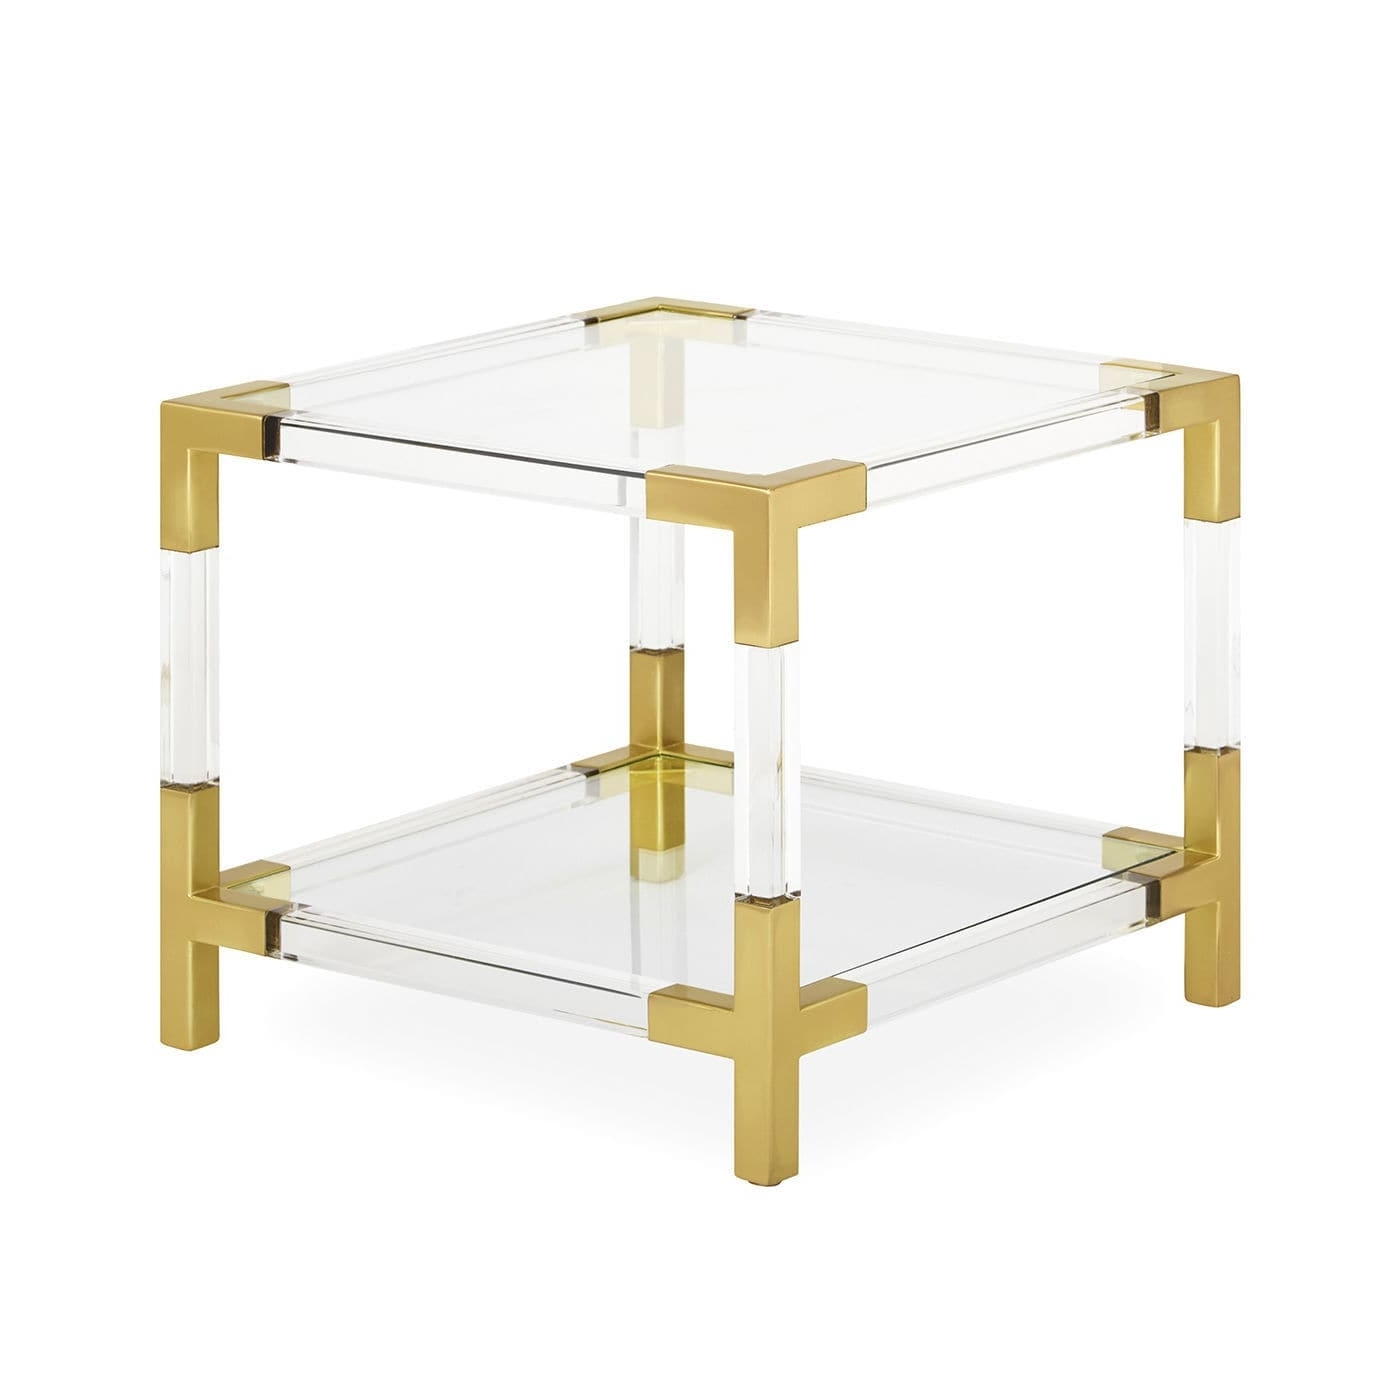 Contemporary Side Table / Glass / Brushed Brass / Acrylic – Jacques Regarding Most Up To Date Acrylic & Brushed Brass Coffee Tables (View 18 of 20)